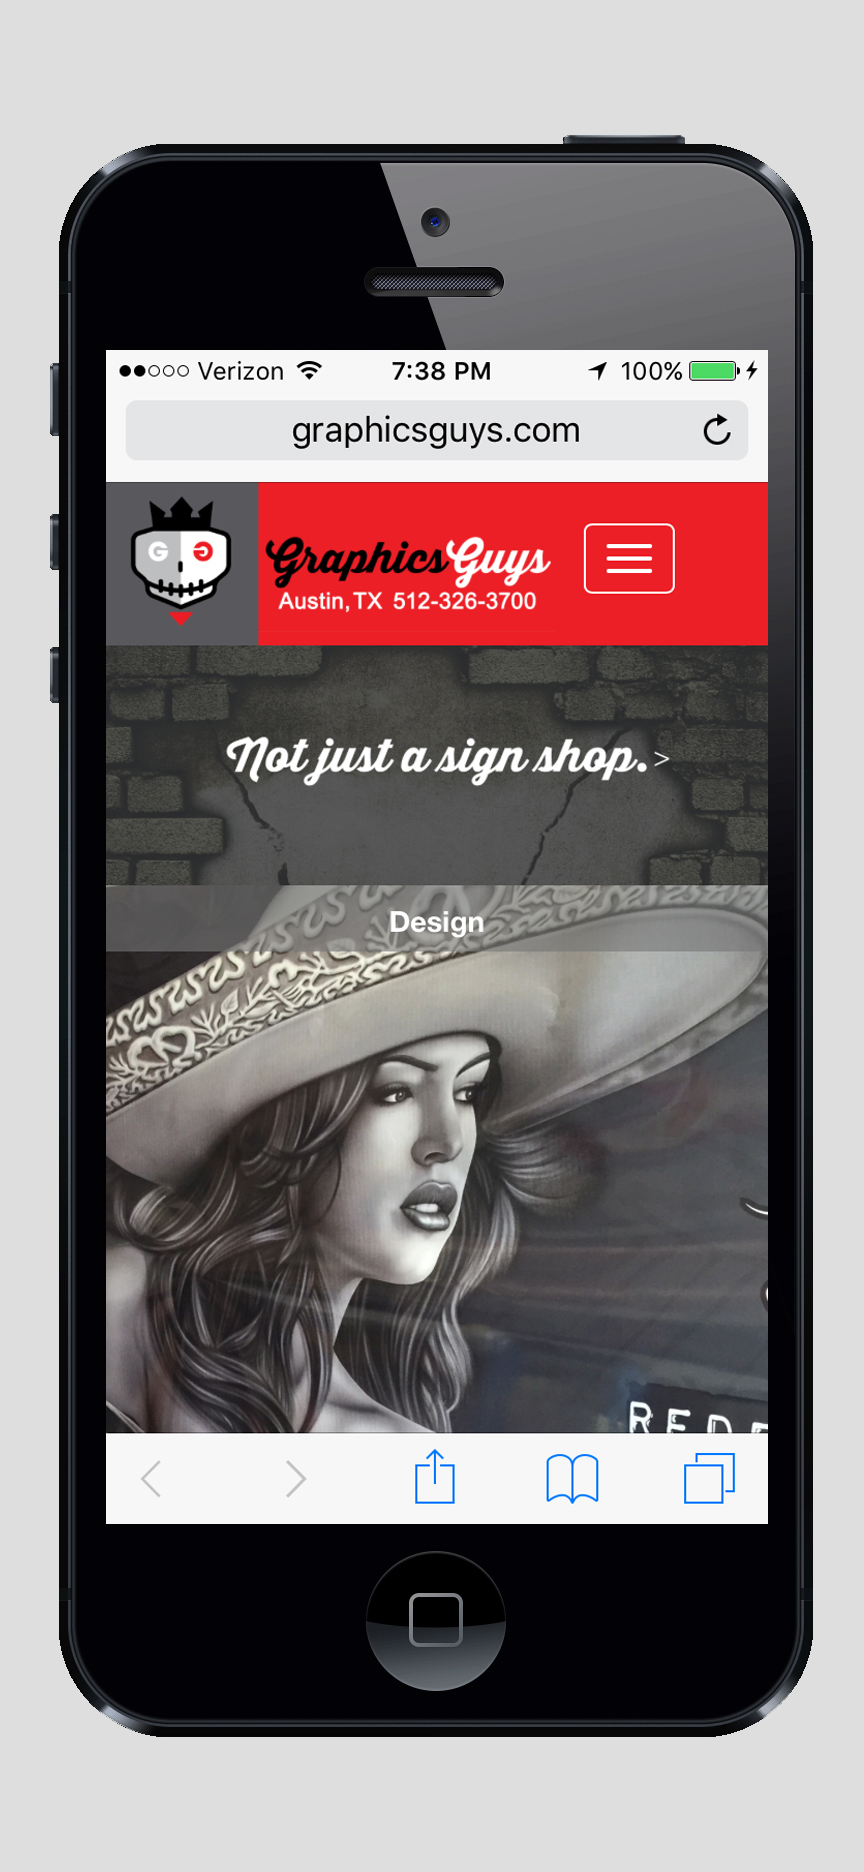 GraphicsGuys Responsive Website Design and Production